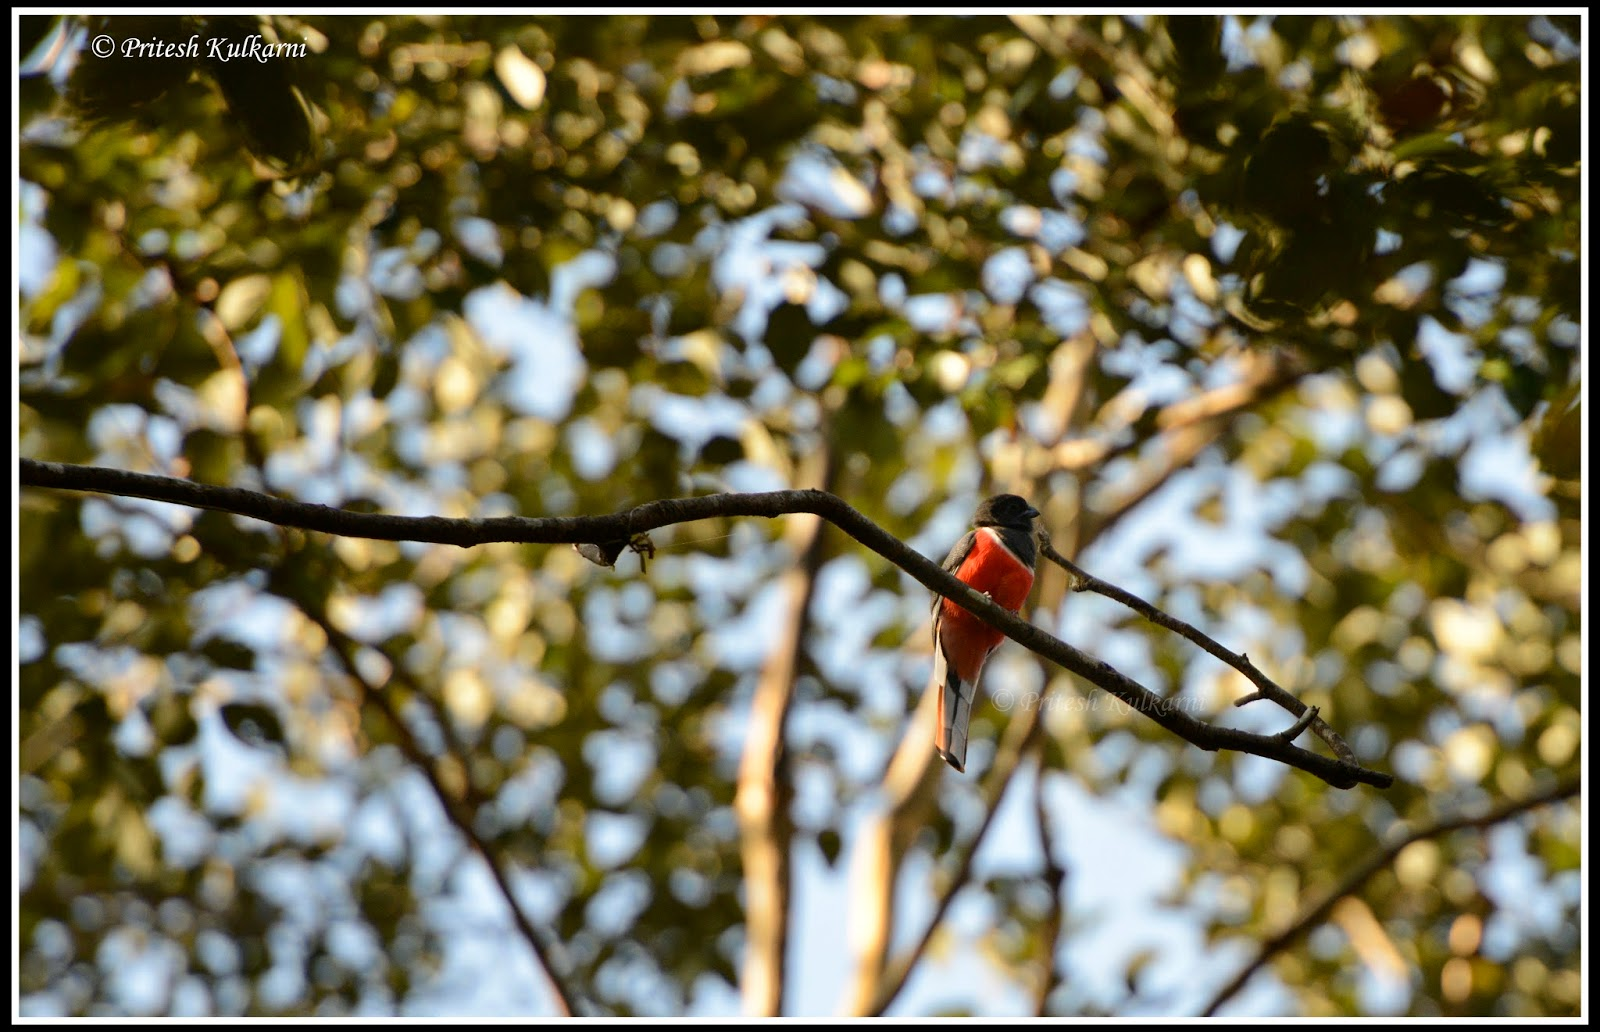 Malabar Trogon  at Old Magazine House